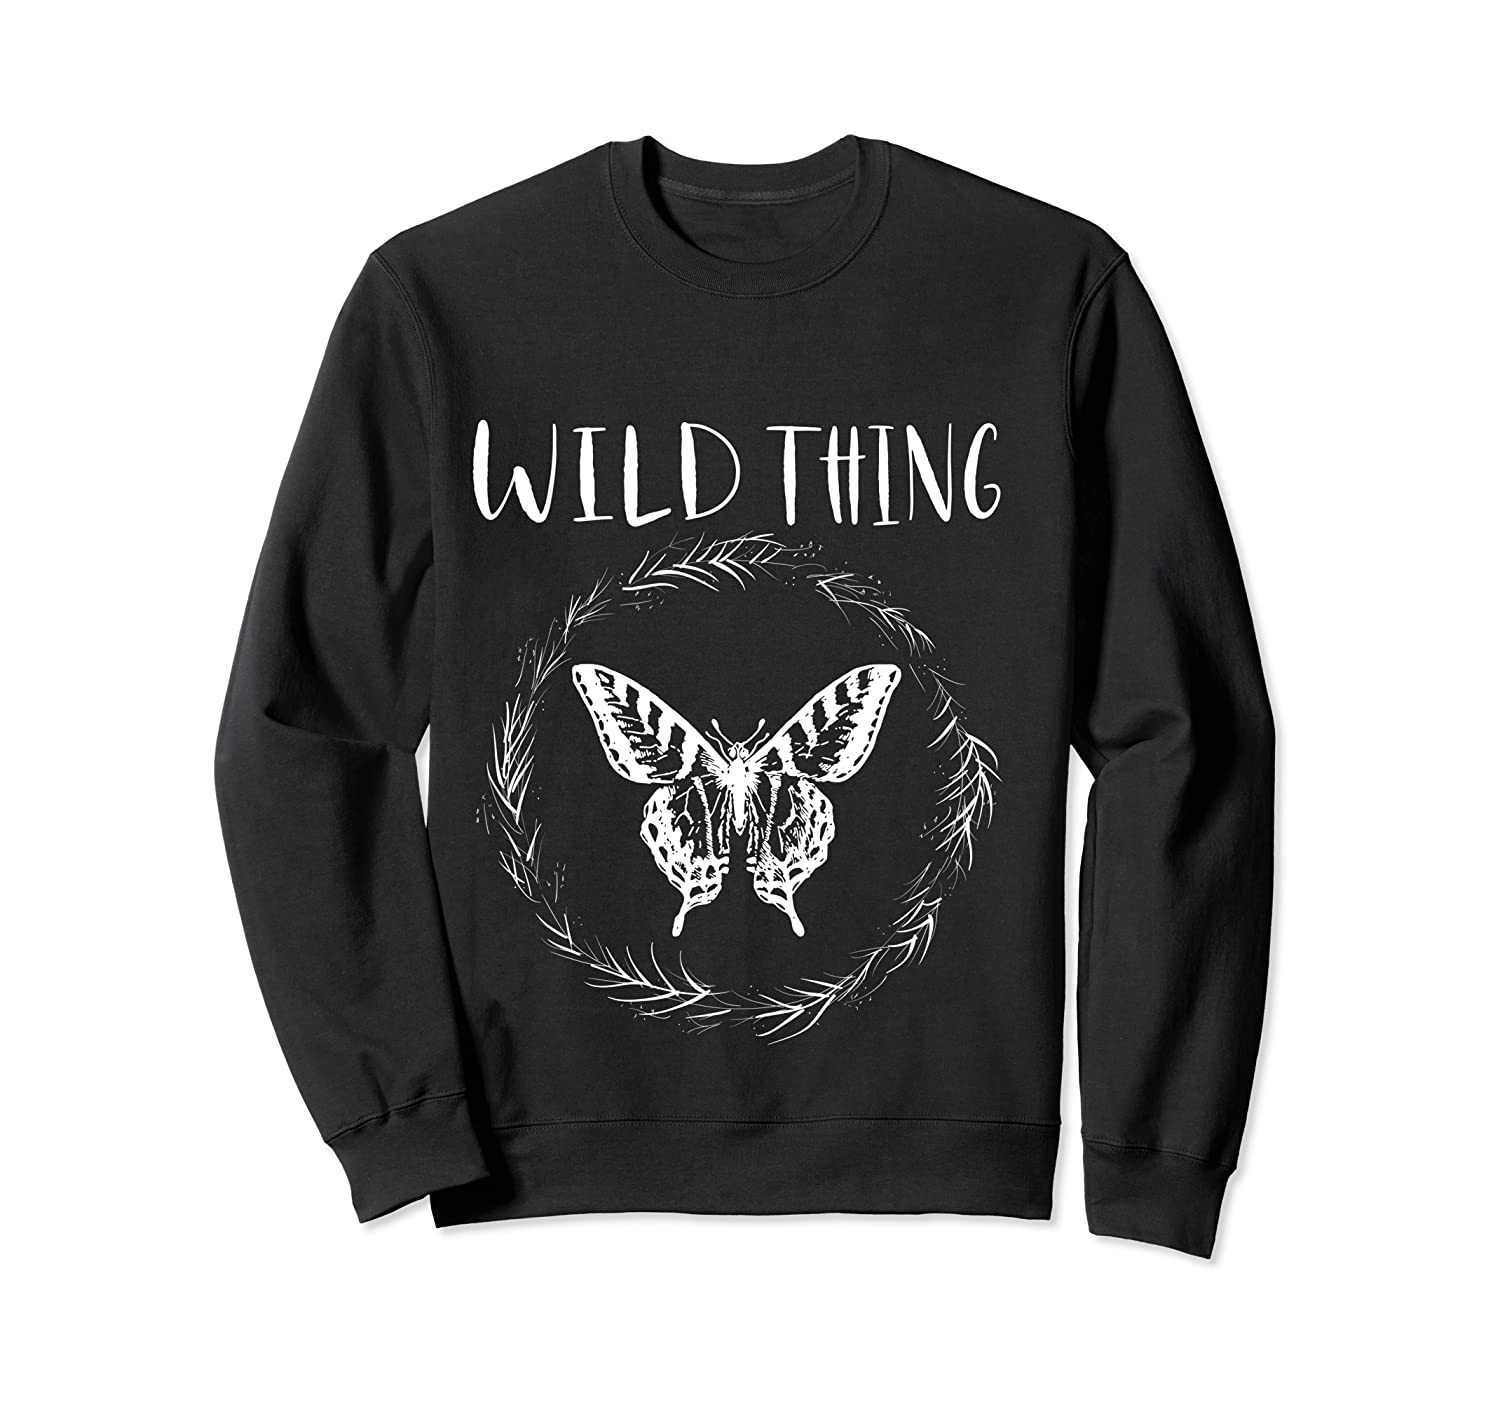 Wild Thing Butterfly Floral Wht Shirts Crewneck Sweater